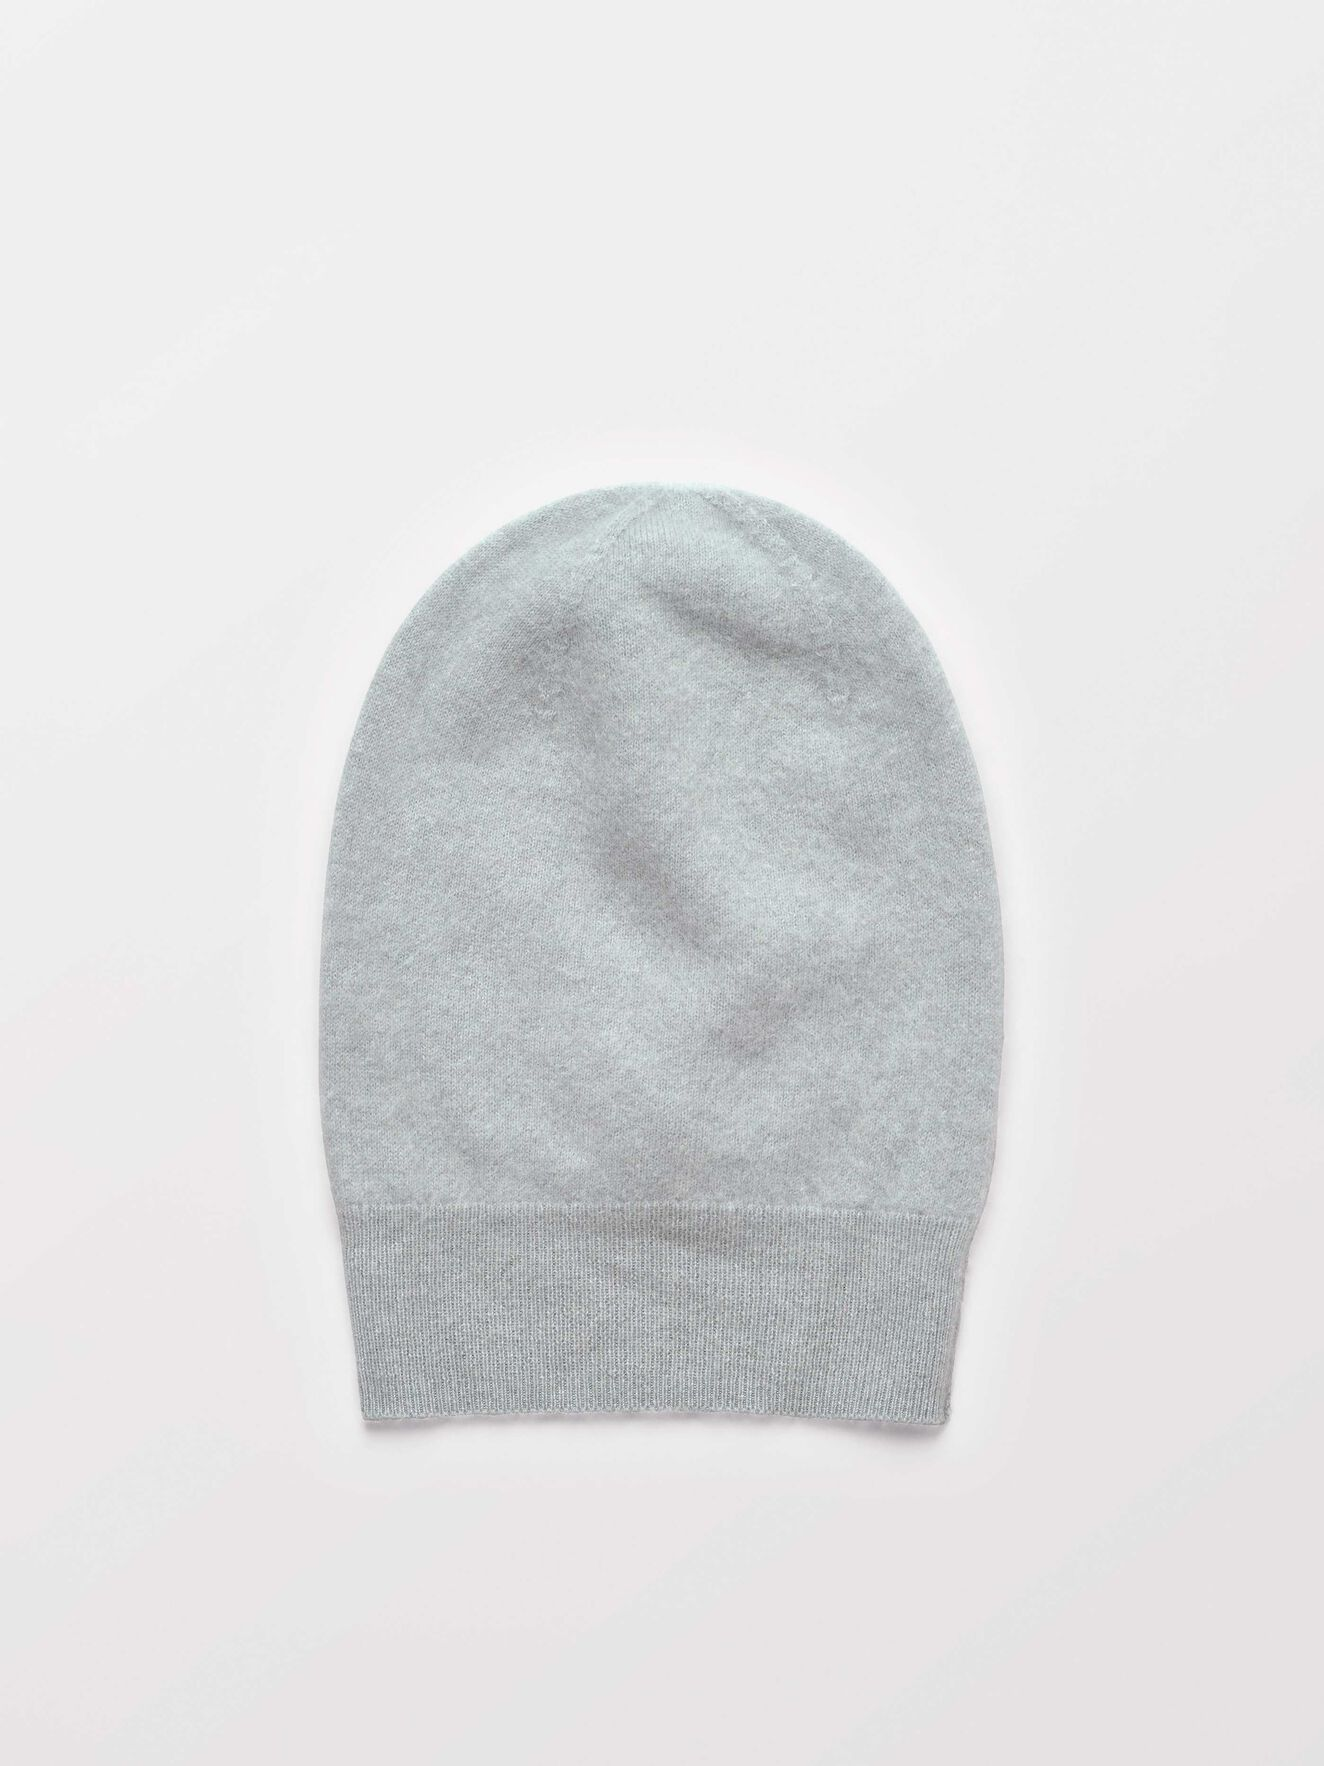 Fagiolo  Beanie in Aluminium Grey from Tiger of Sweden